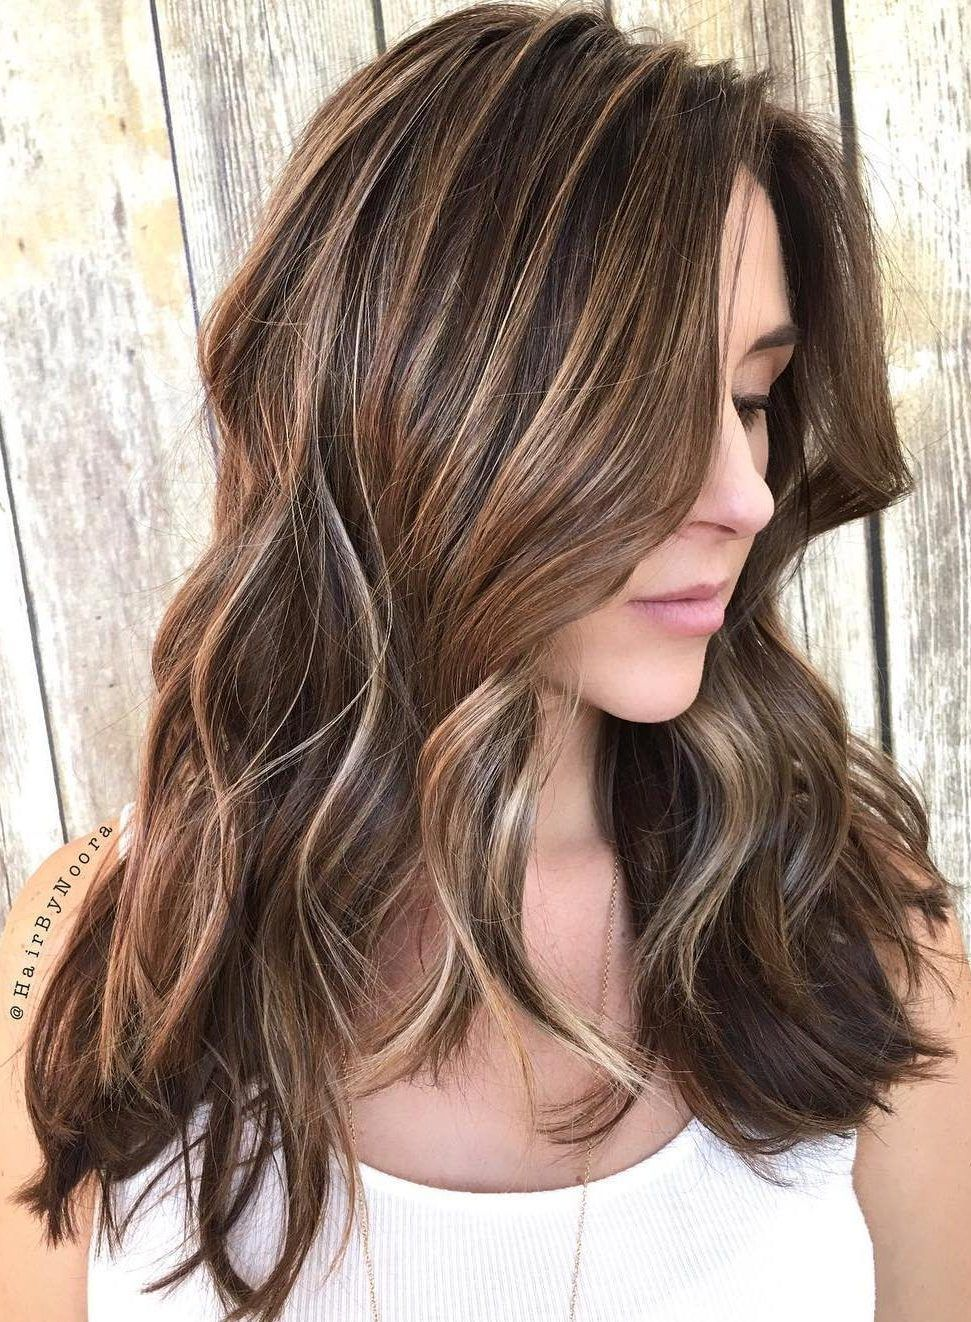 40 Ideas For Light Brown Hair With Highlights And Lowlights Light Brown H In 2020 Light Brown Hair Brown Hair With Highlights And Lowlights Brown Hair With Highlights